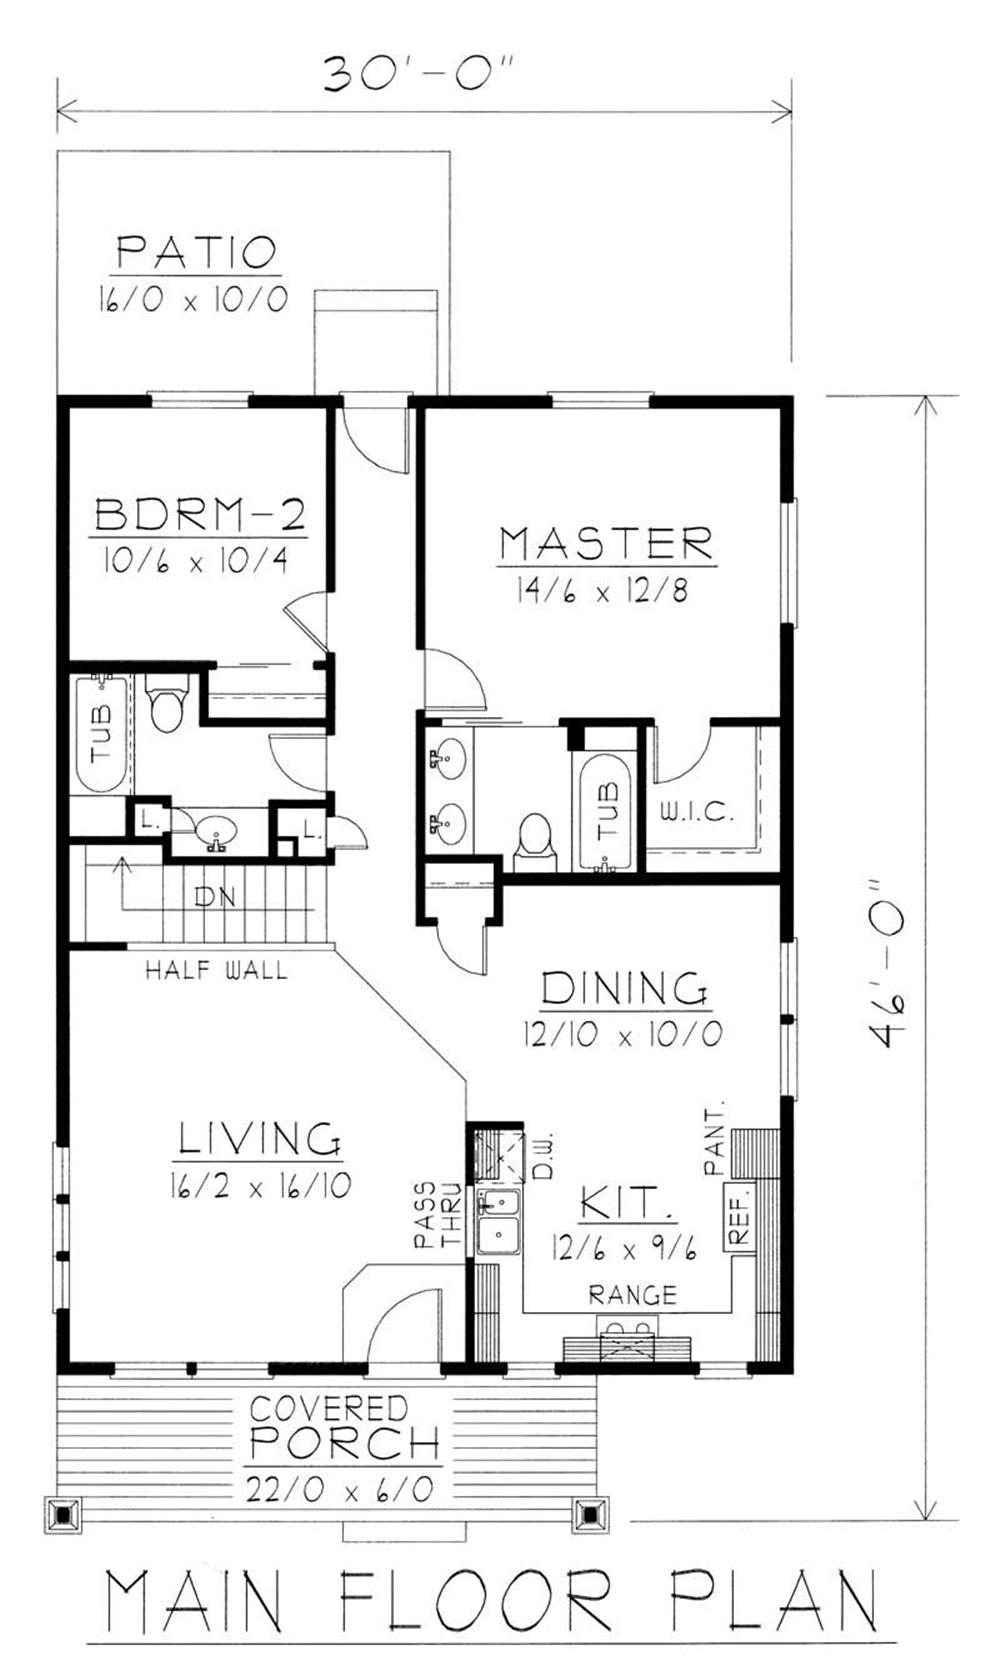 House Plan RDI-1200R1-B Main Floor Plan